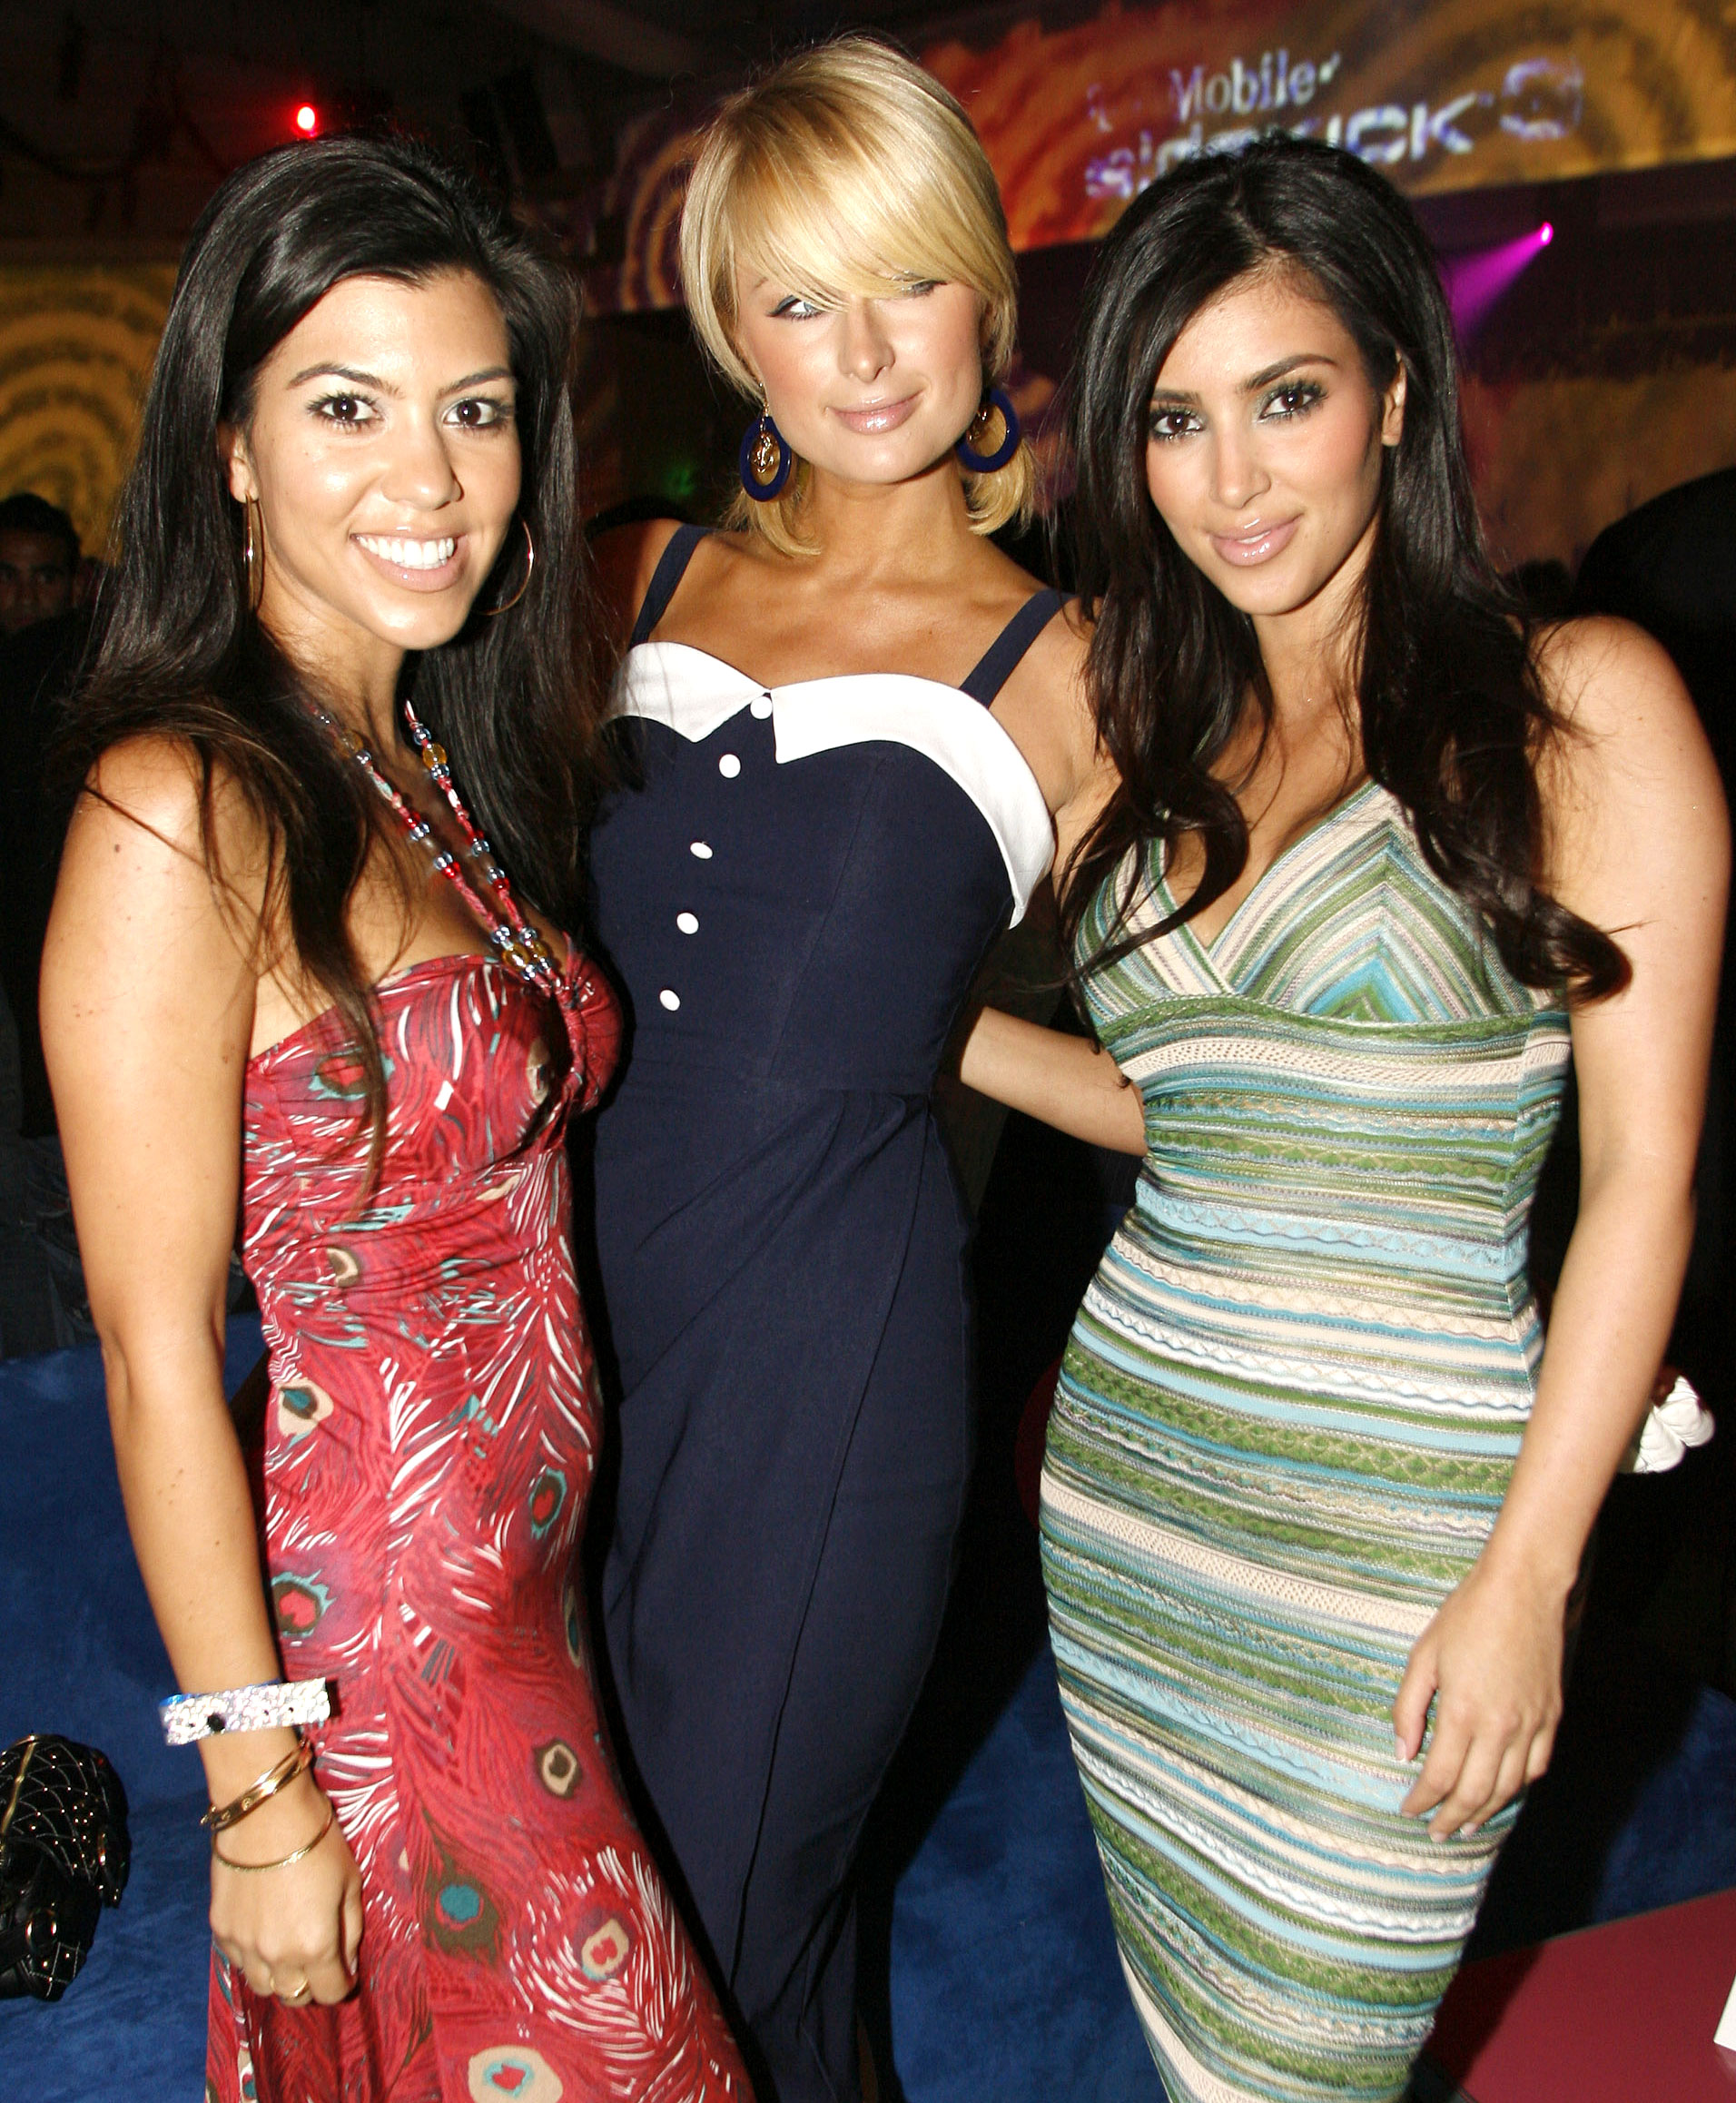 Kourtney Kardashian Through the Years - Kourtney and Kim often partied with Paris Hilton, whom the KKW Beauty CEO worked for, in 2006.